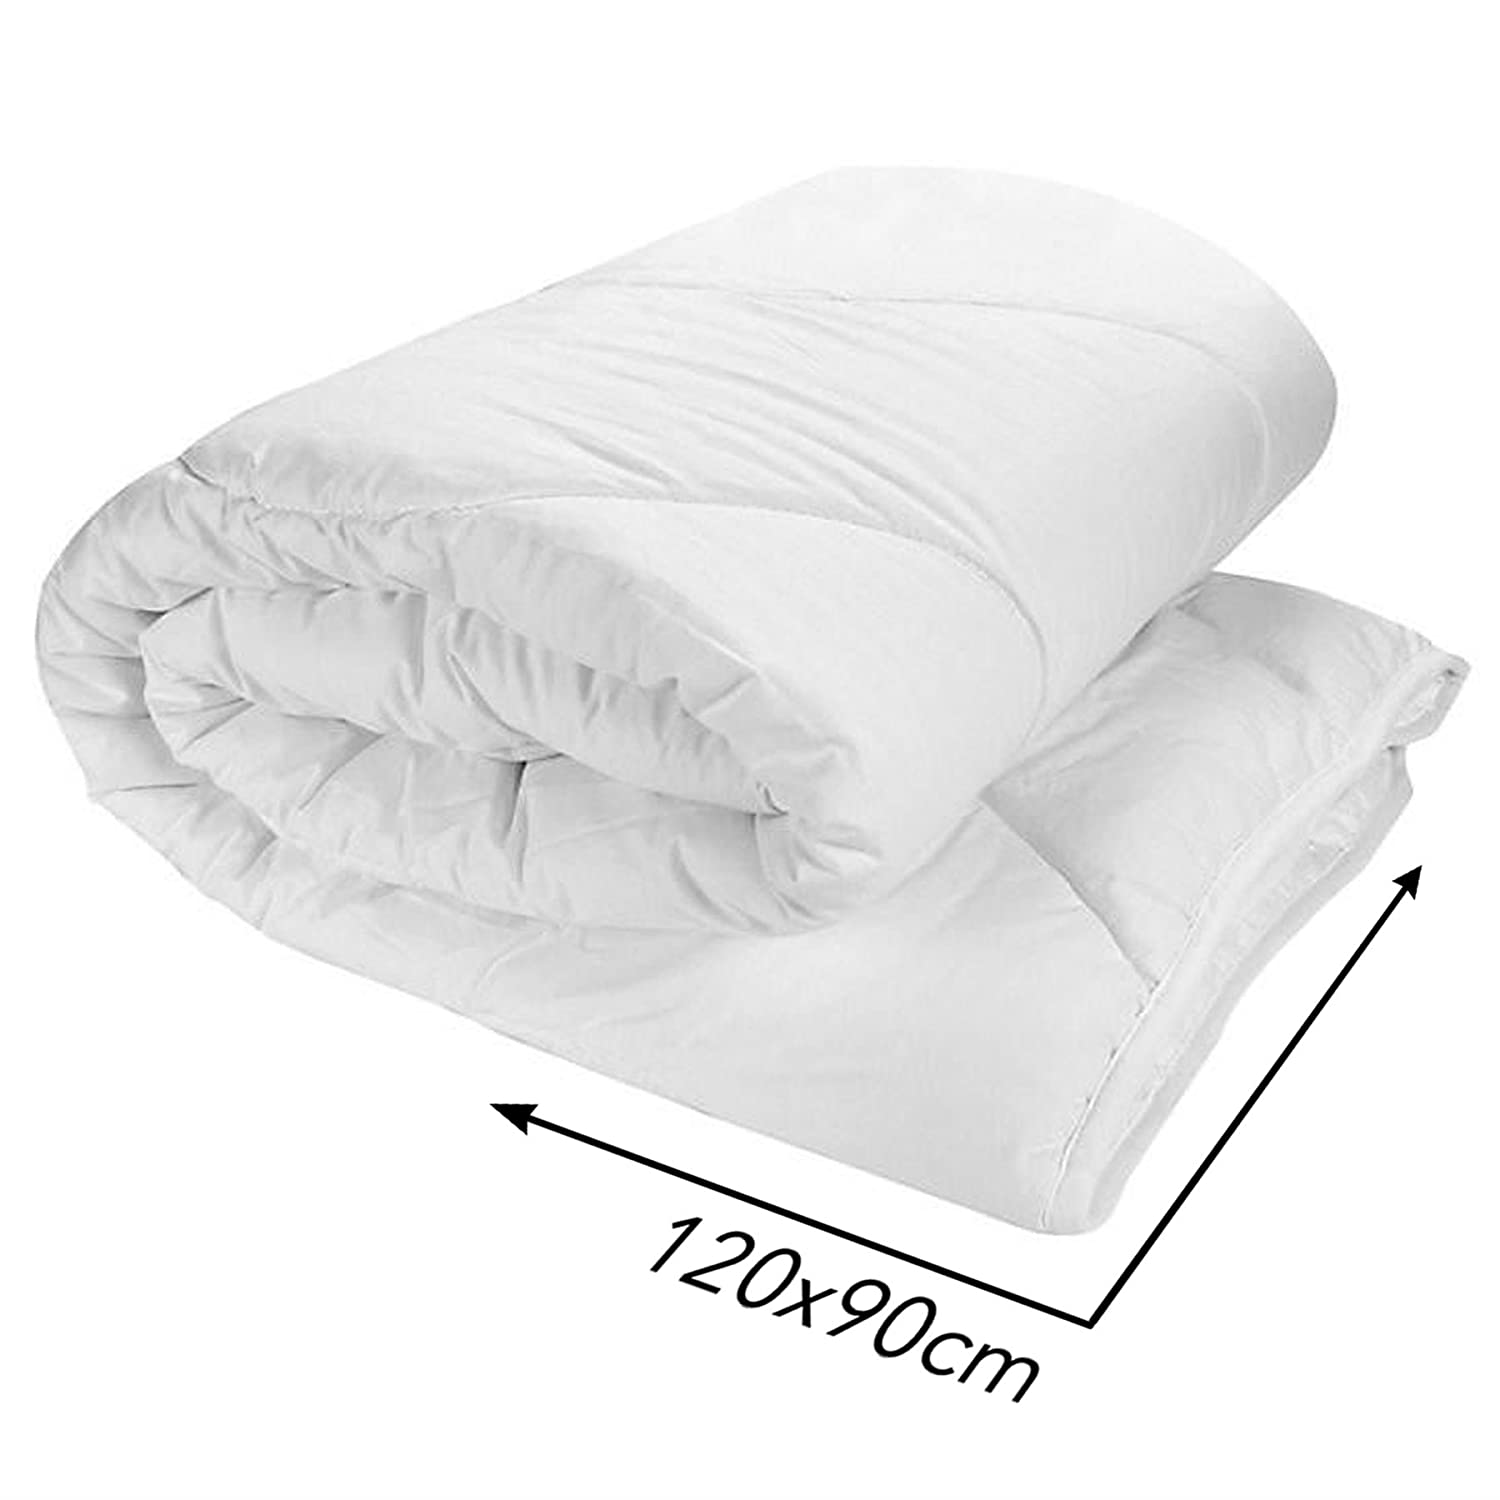 Anti-Allergy Cot Duvet Filling Quilt 120/90 cm for Nursery Baby Junior Toddler Baby Comfort